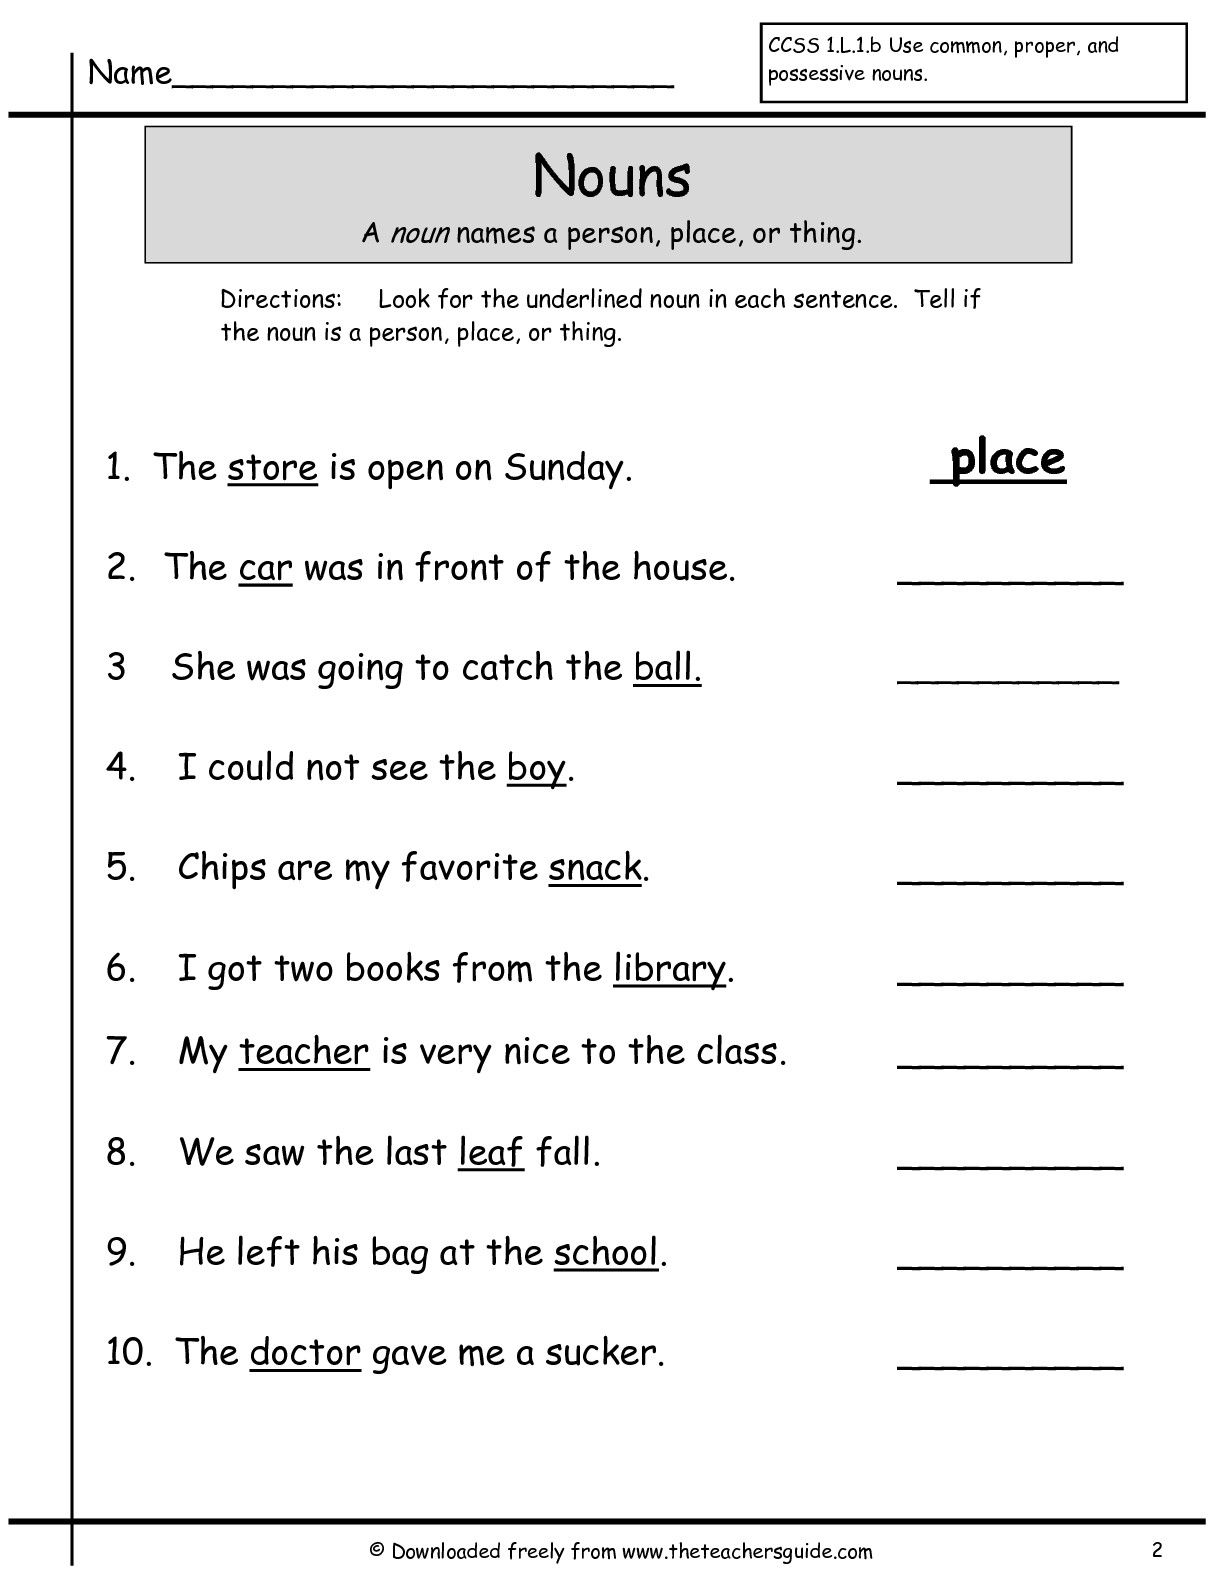 nouns grade 1 worksheets google search kelina pinterest worksheets english and language. Black Bedroom Furniture Sets. Home Design Ideas